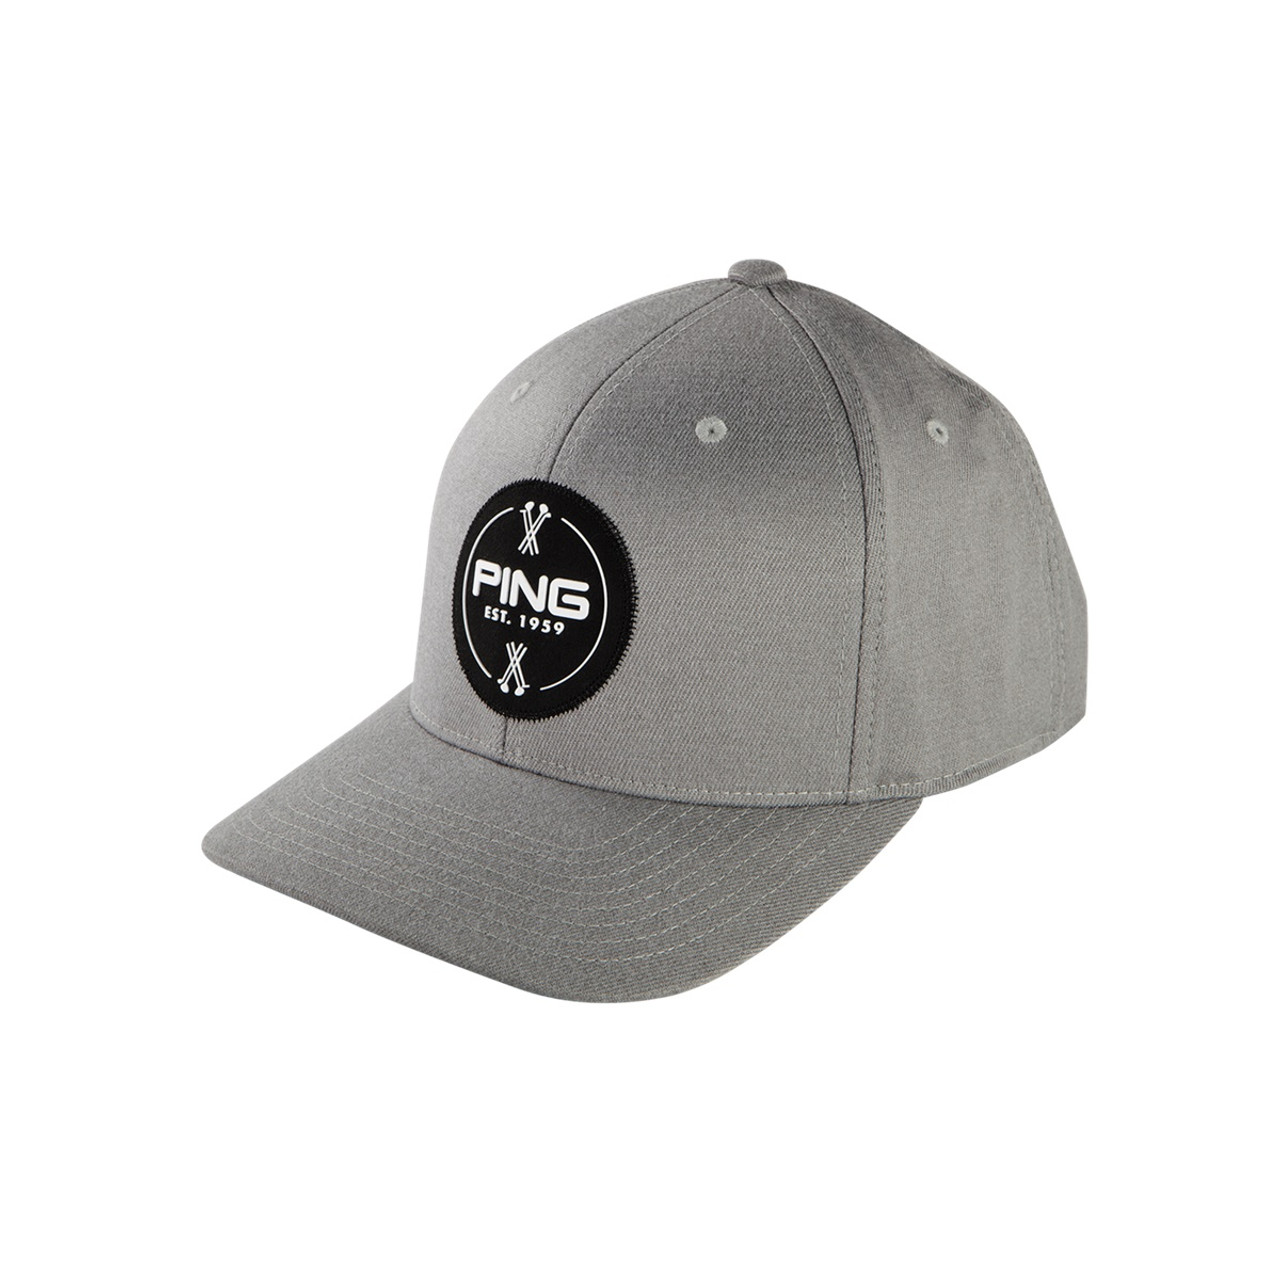 5f0f4e55768 Ping patch cap adjustable golf hat light grey golfland warehouse ping golf  patch jpg 1200x1200 Ping